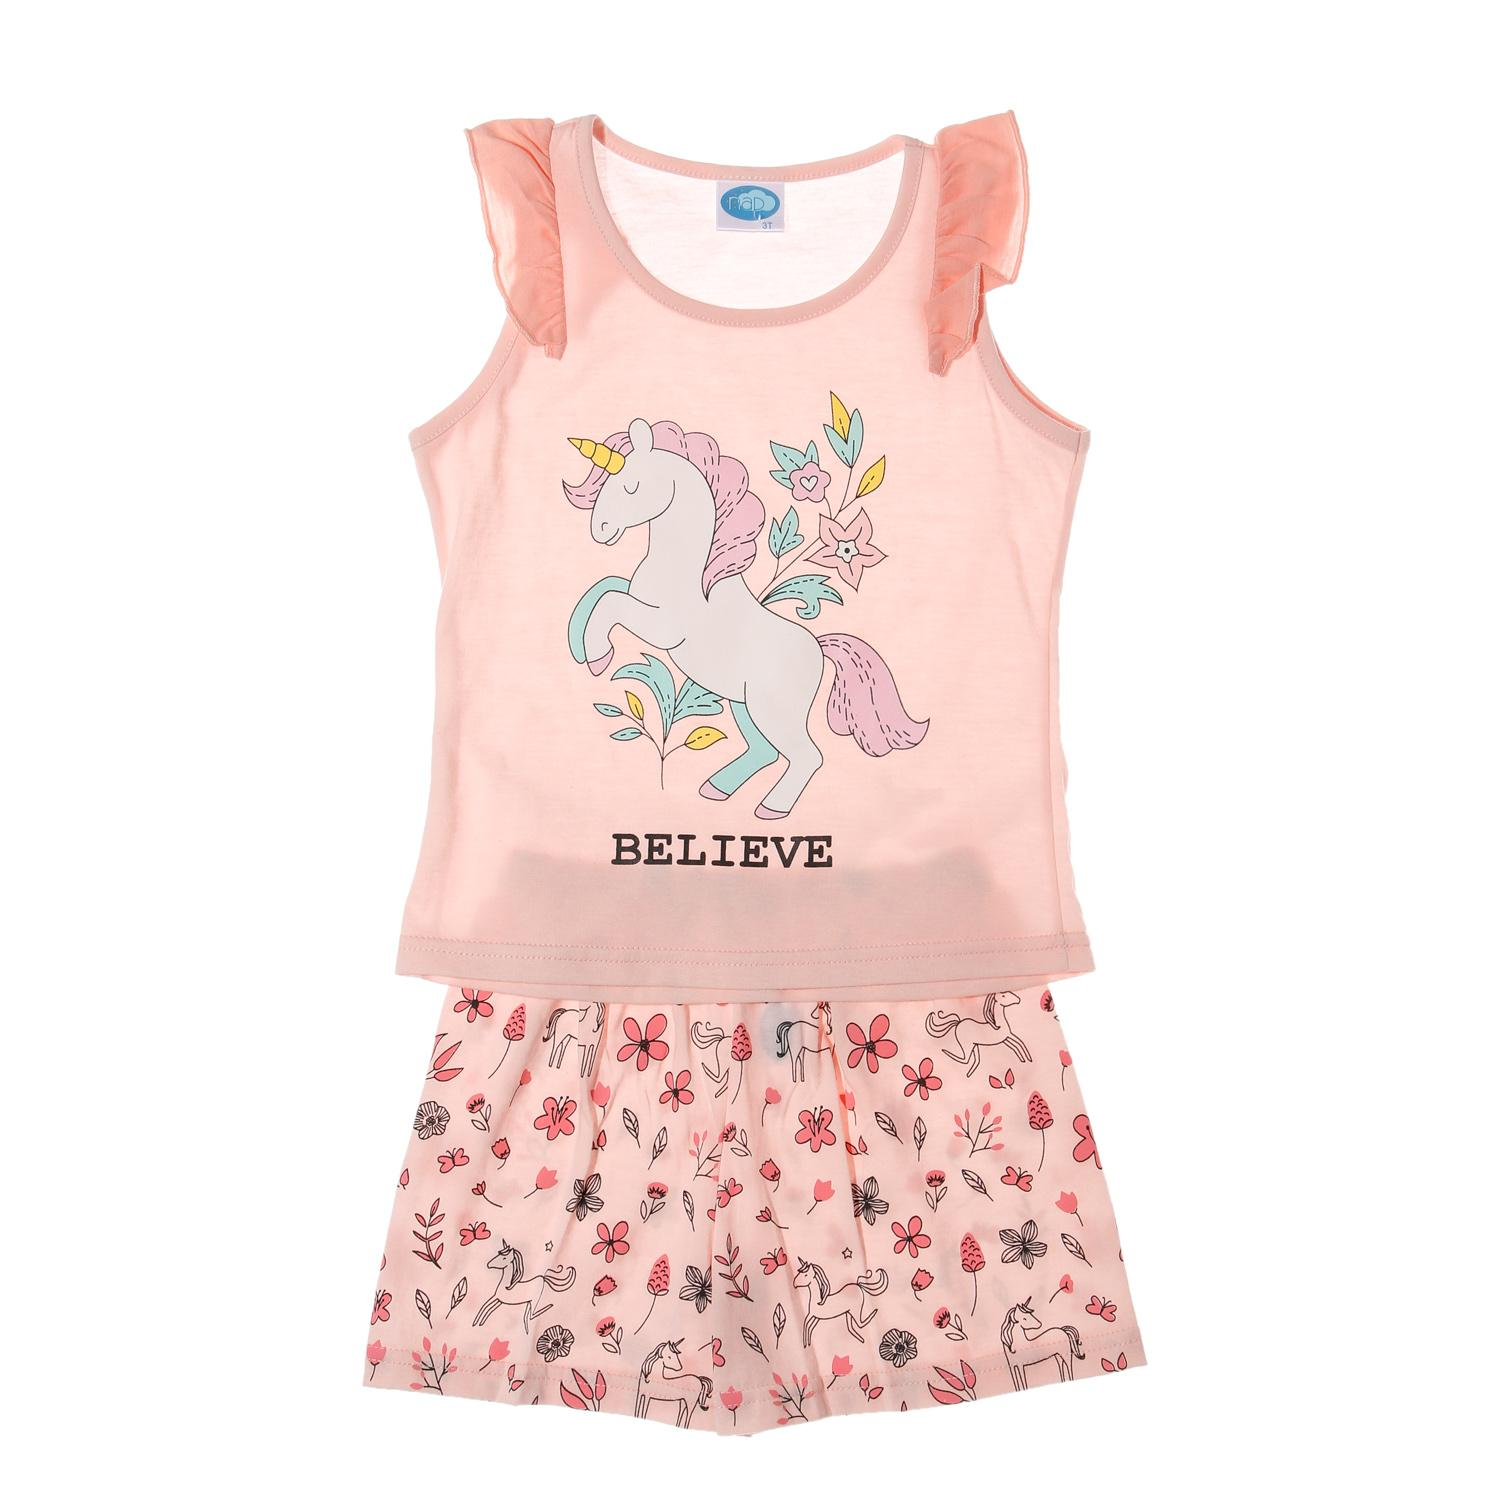 Girls Clothing Sets for sale - Clothing Sets for Baby Girls online ... 41d1d78cf4d2